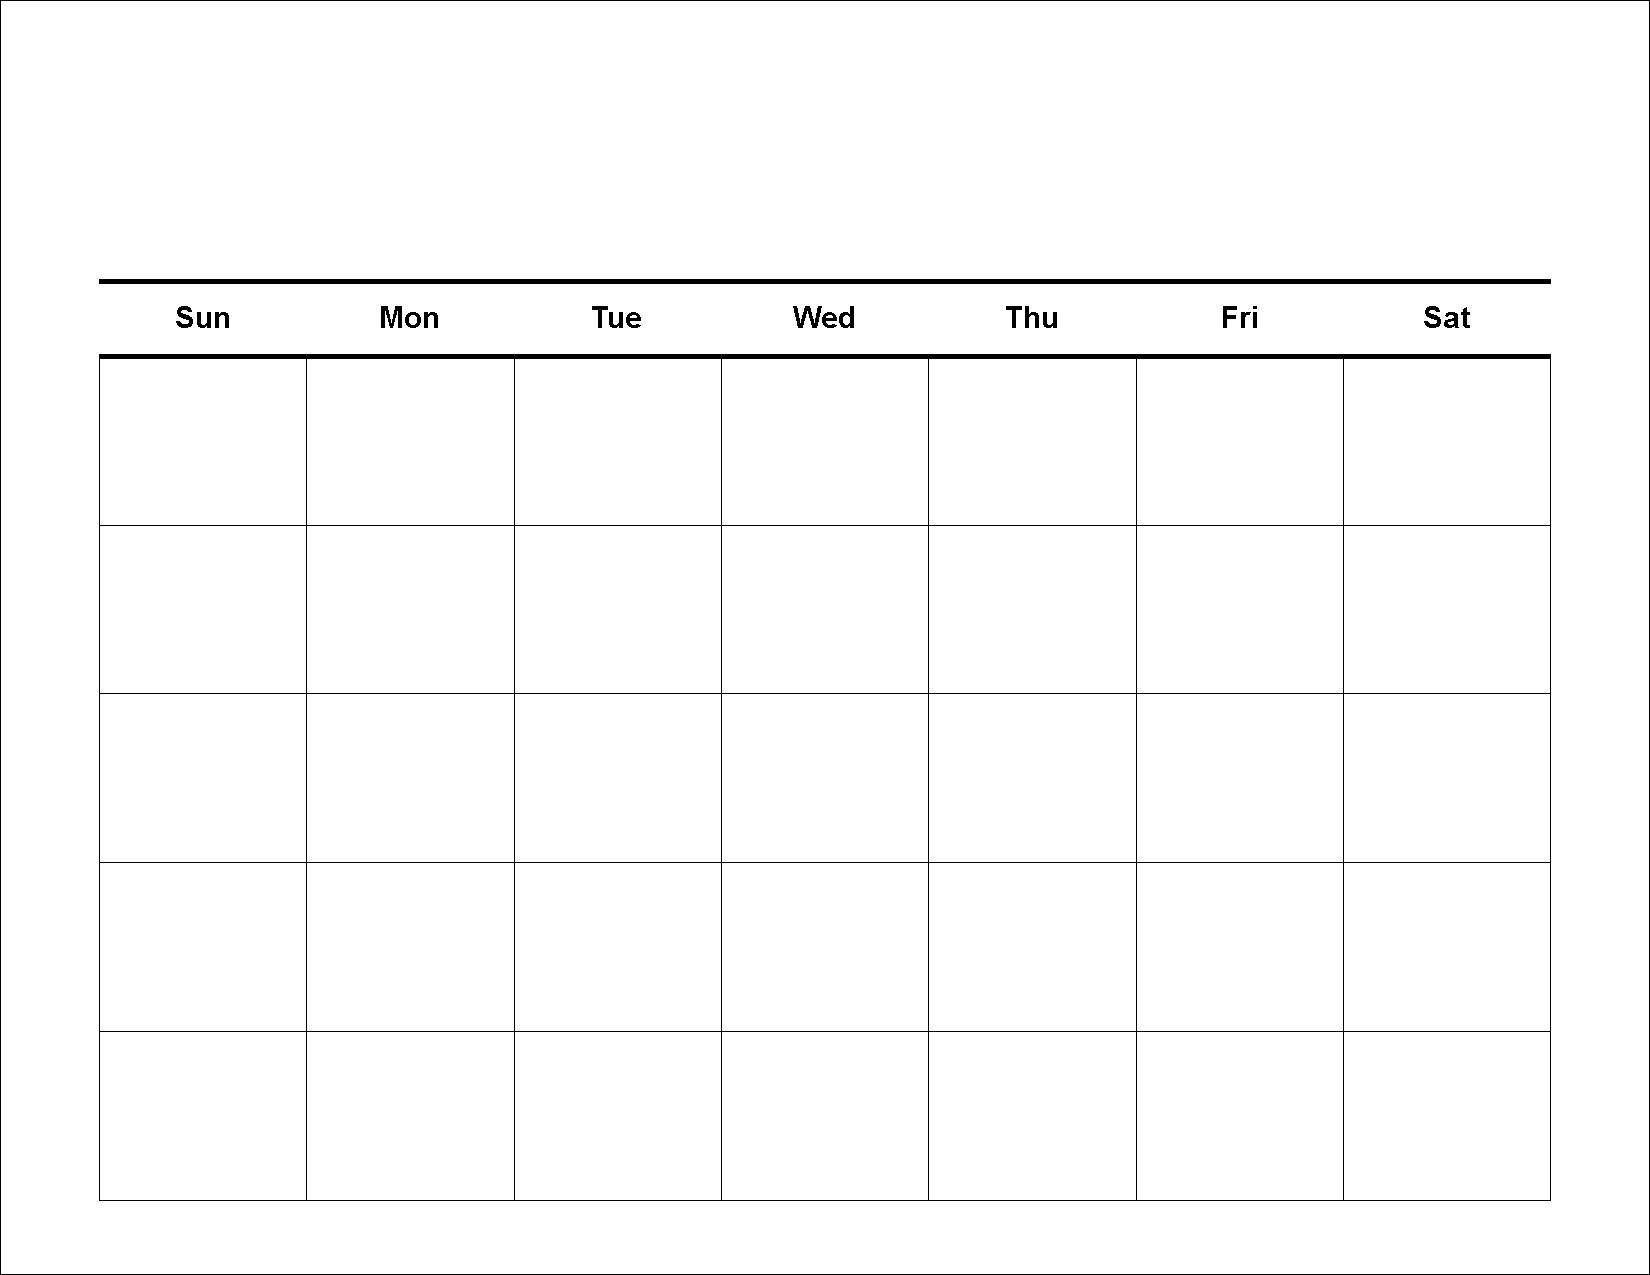 blank calendar printable - Yahoo Search Results | Secretaria board ...